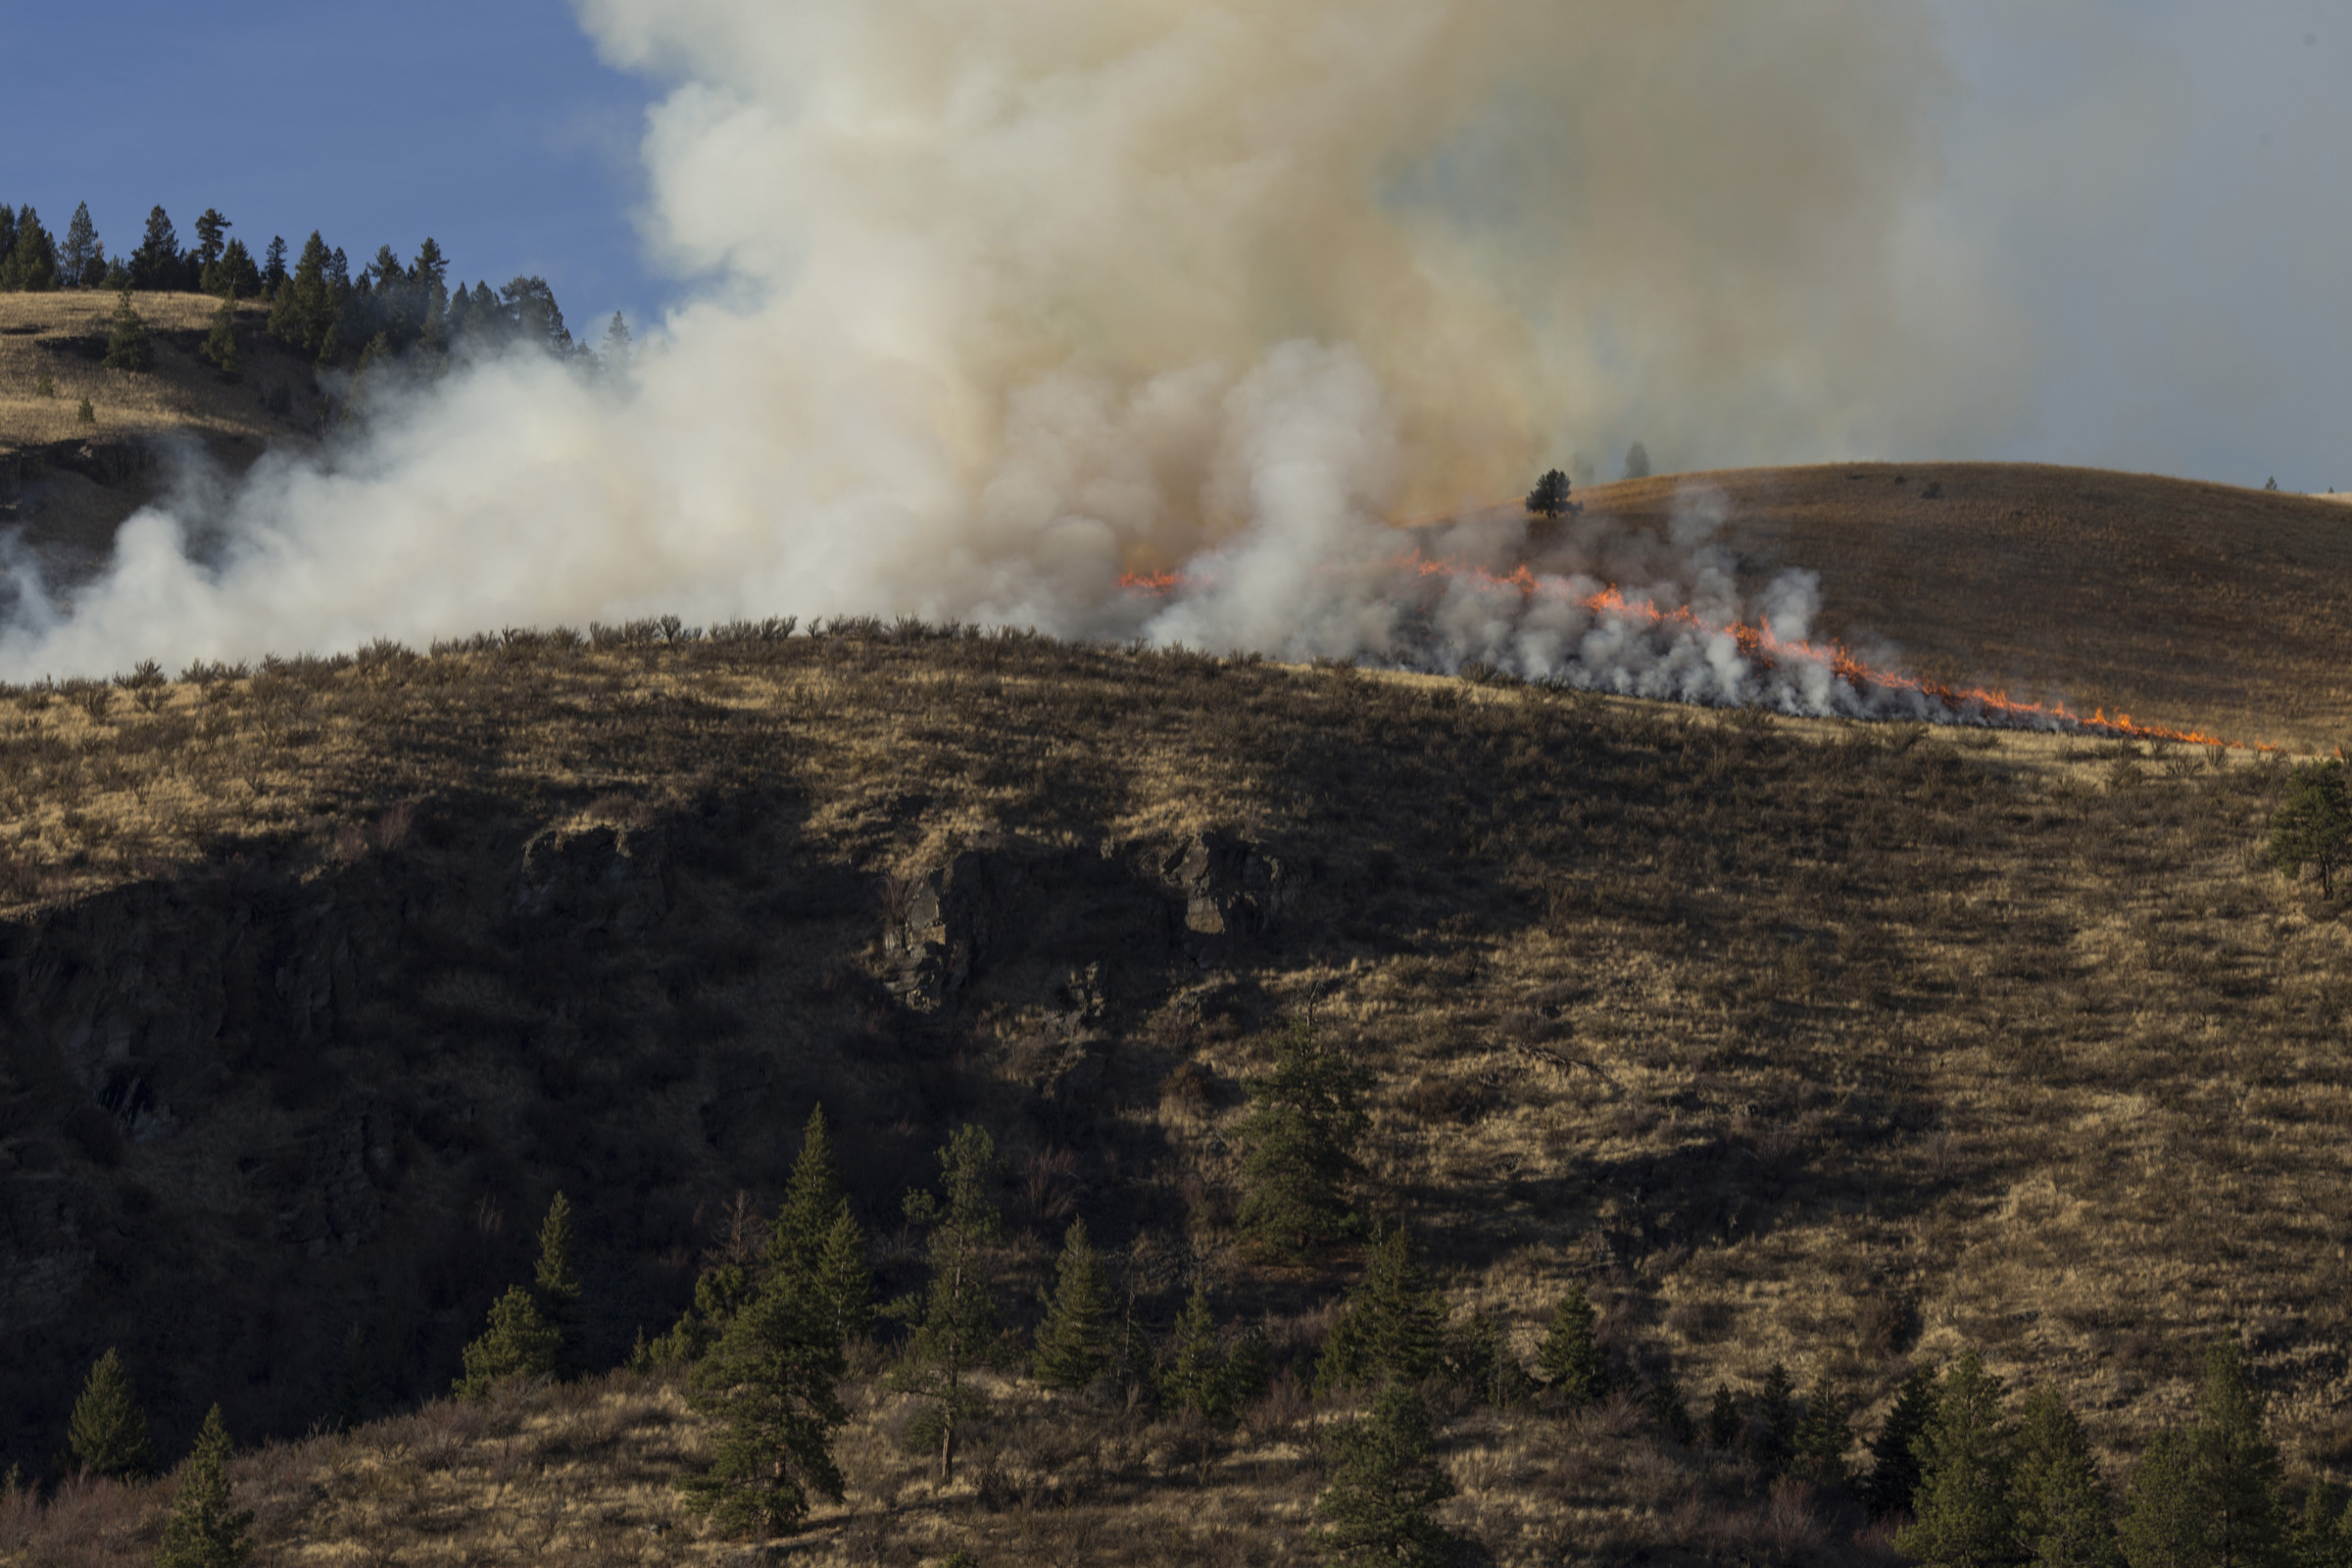 A prescribed burn prepared by the Confederated Salish and Kootenai Tribes Division of Fire skims the ridge line just outside of Elmo, Montana, on Tuesday, October 24, 2017. (Photo by Brittany Greeson)